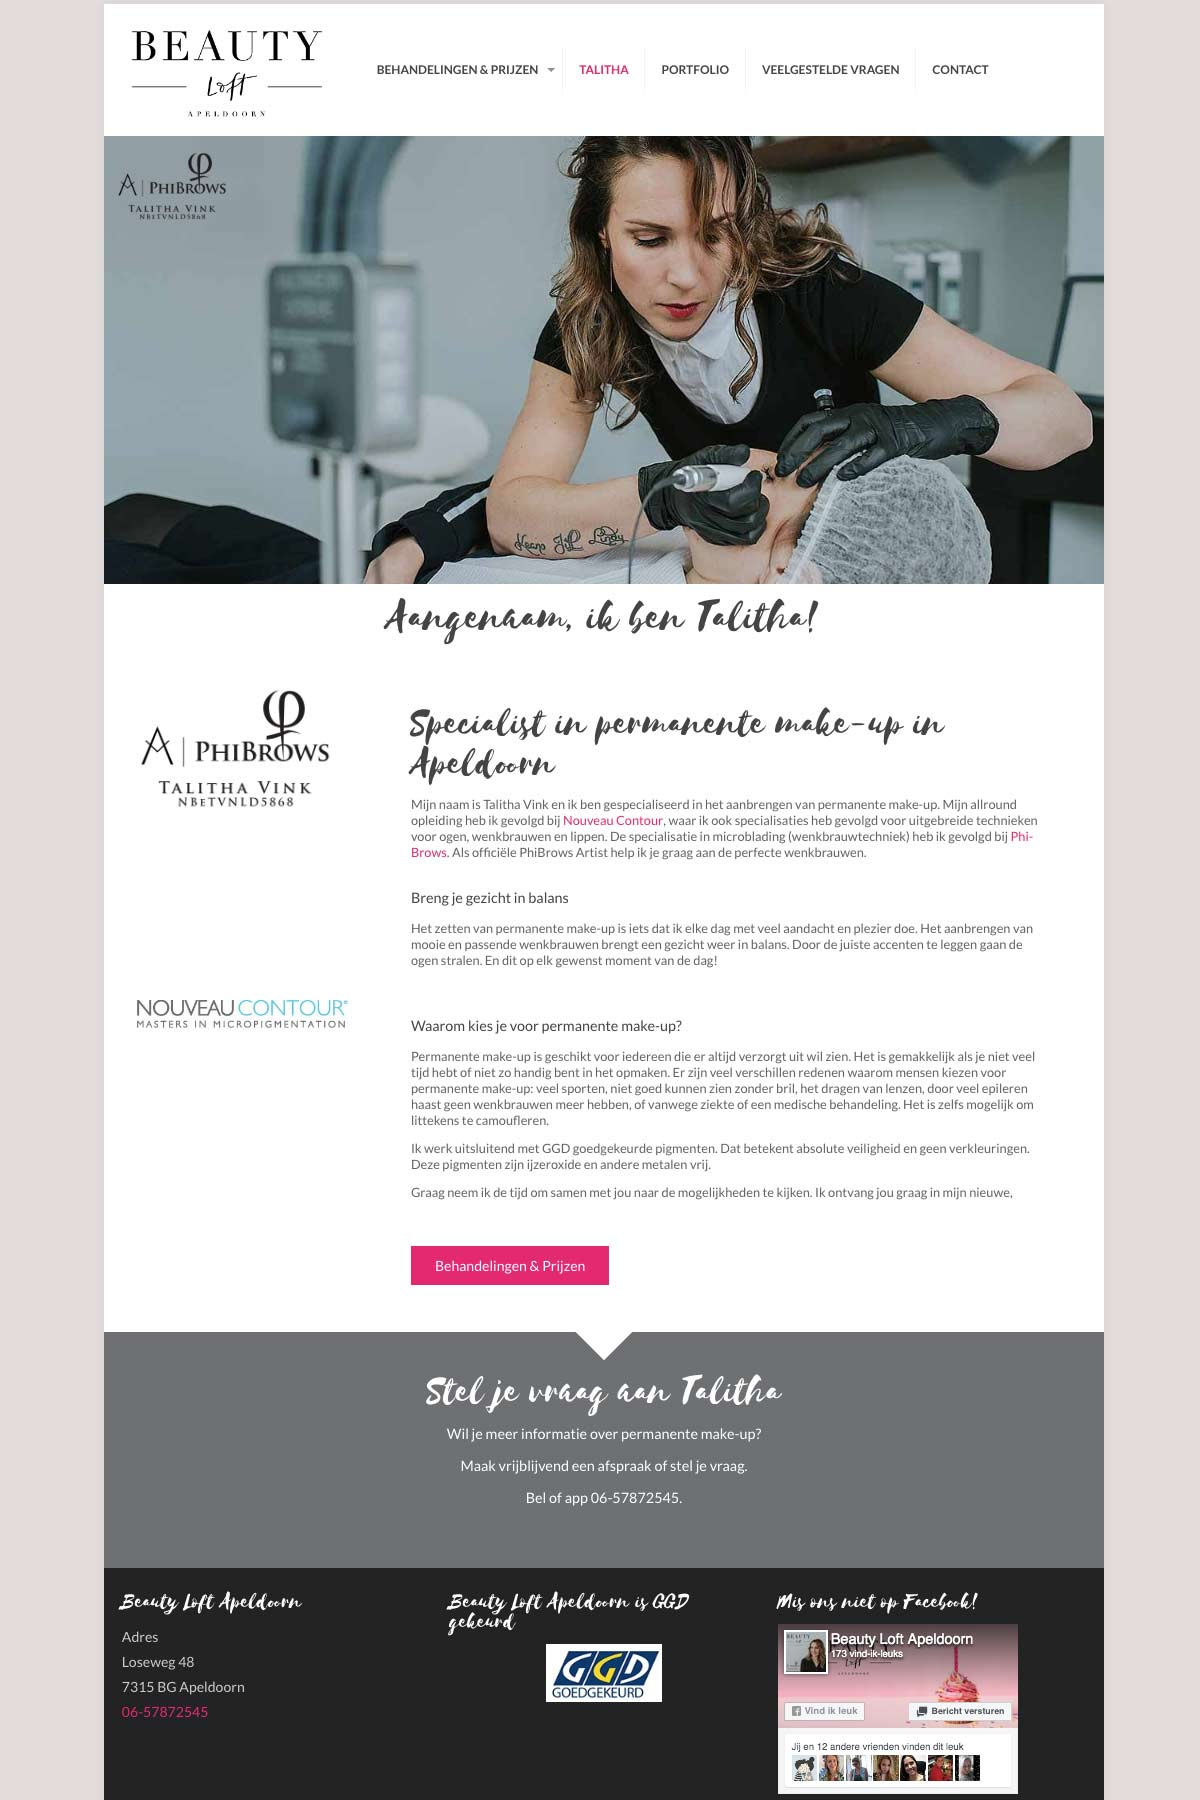 Beauty Loft Apeldoorn | Mrs. Website webdesign